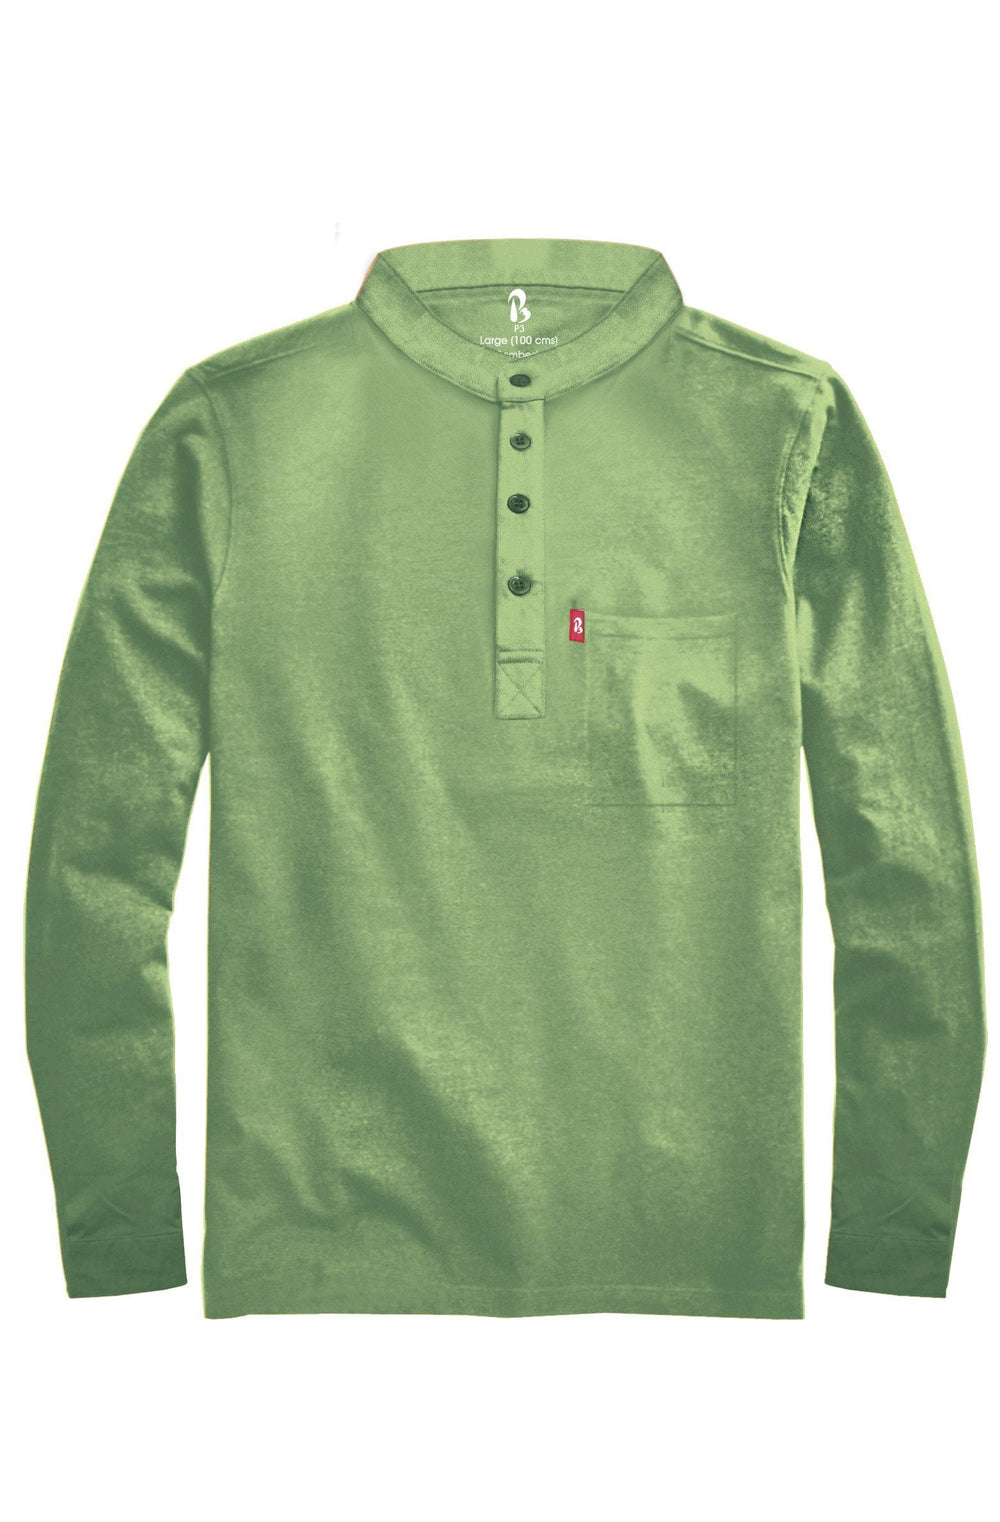 "Cuffed Mandarin Henley (MRP inclusive of all taxes) Mandarins P3 Small/ 90 cms/ Ideal for shirt size 38"" Tulsi"